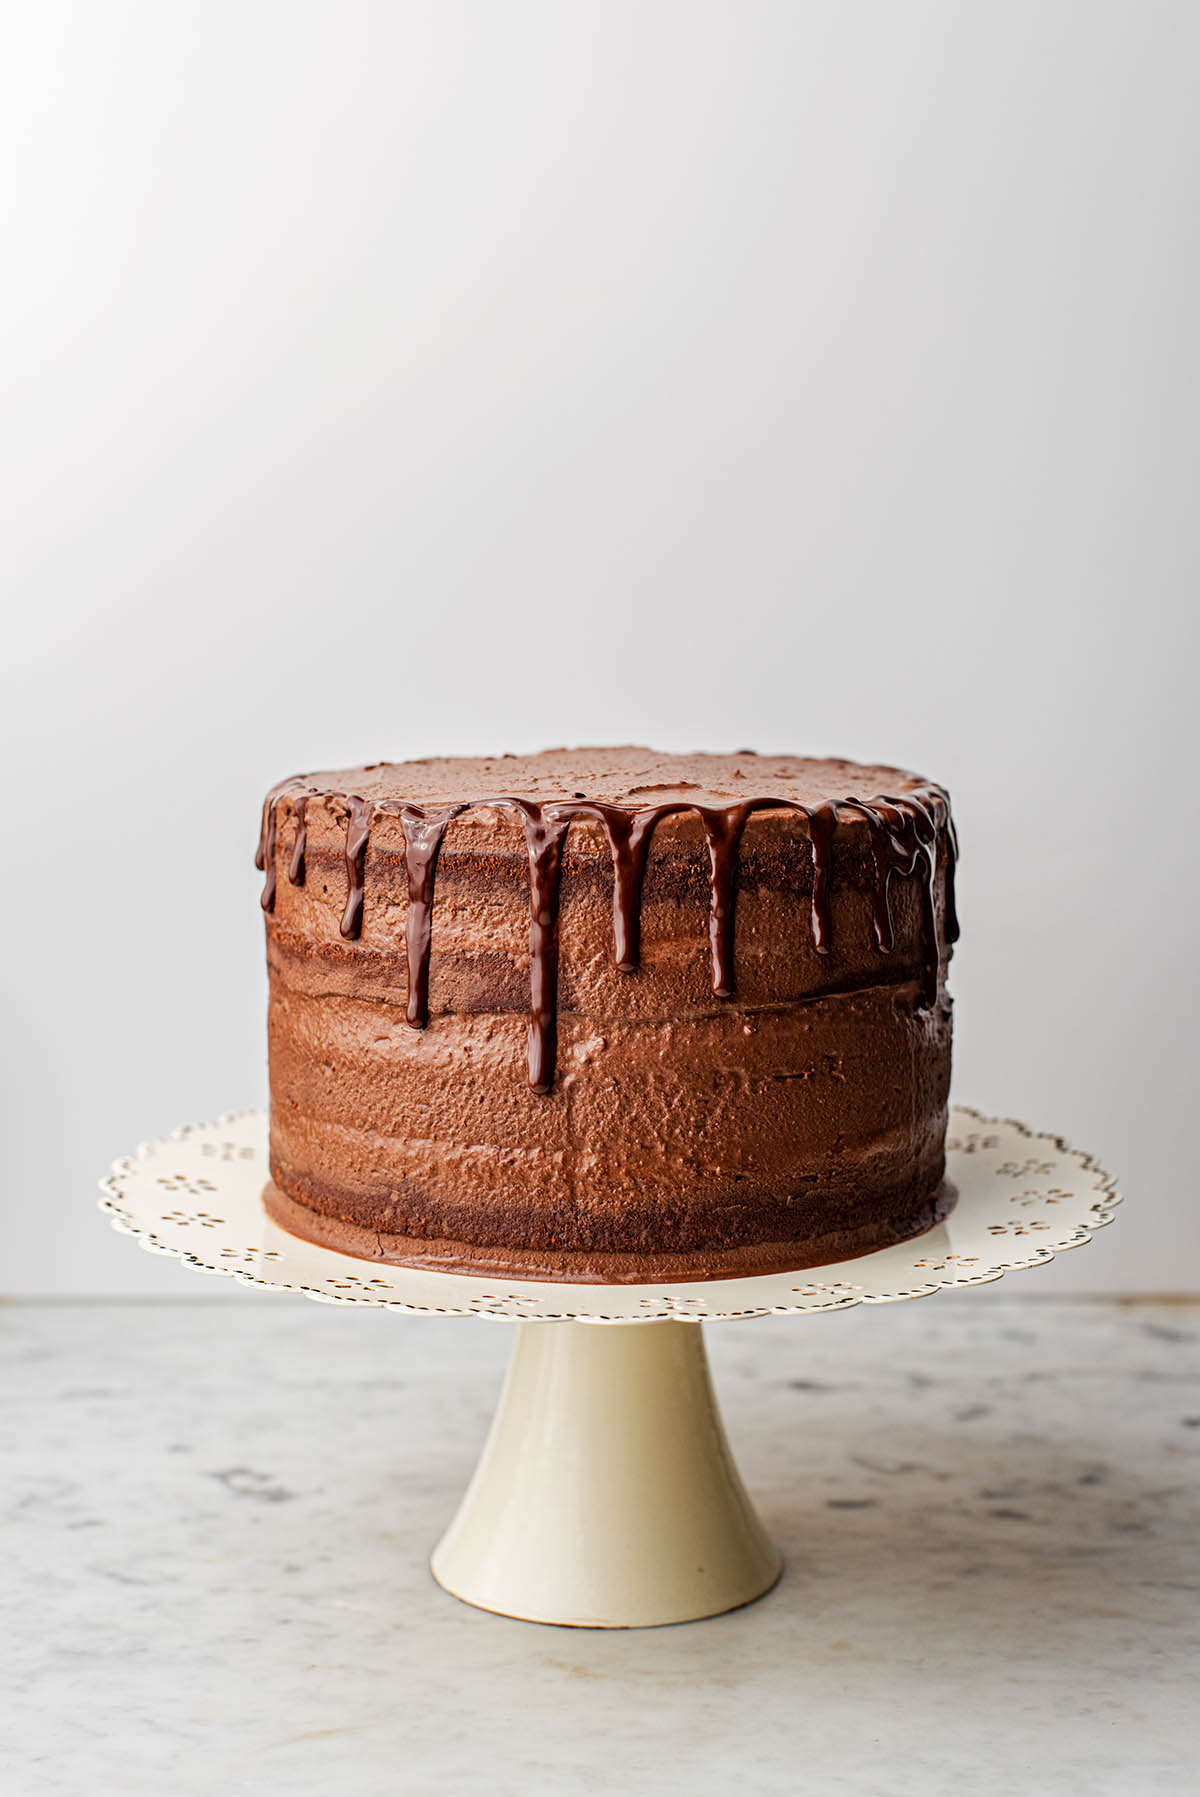 Finished chocolate layer cake with chocolate drip.